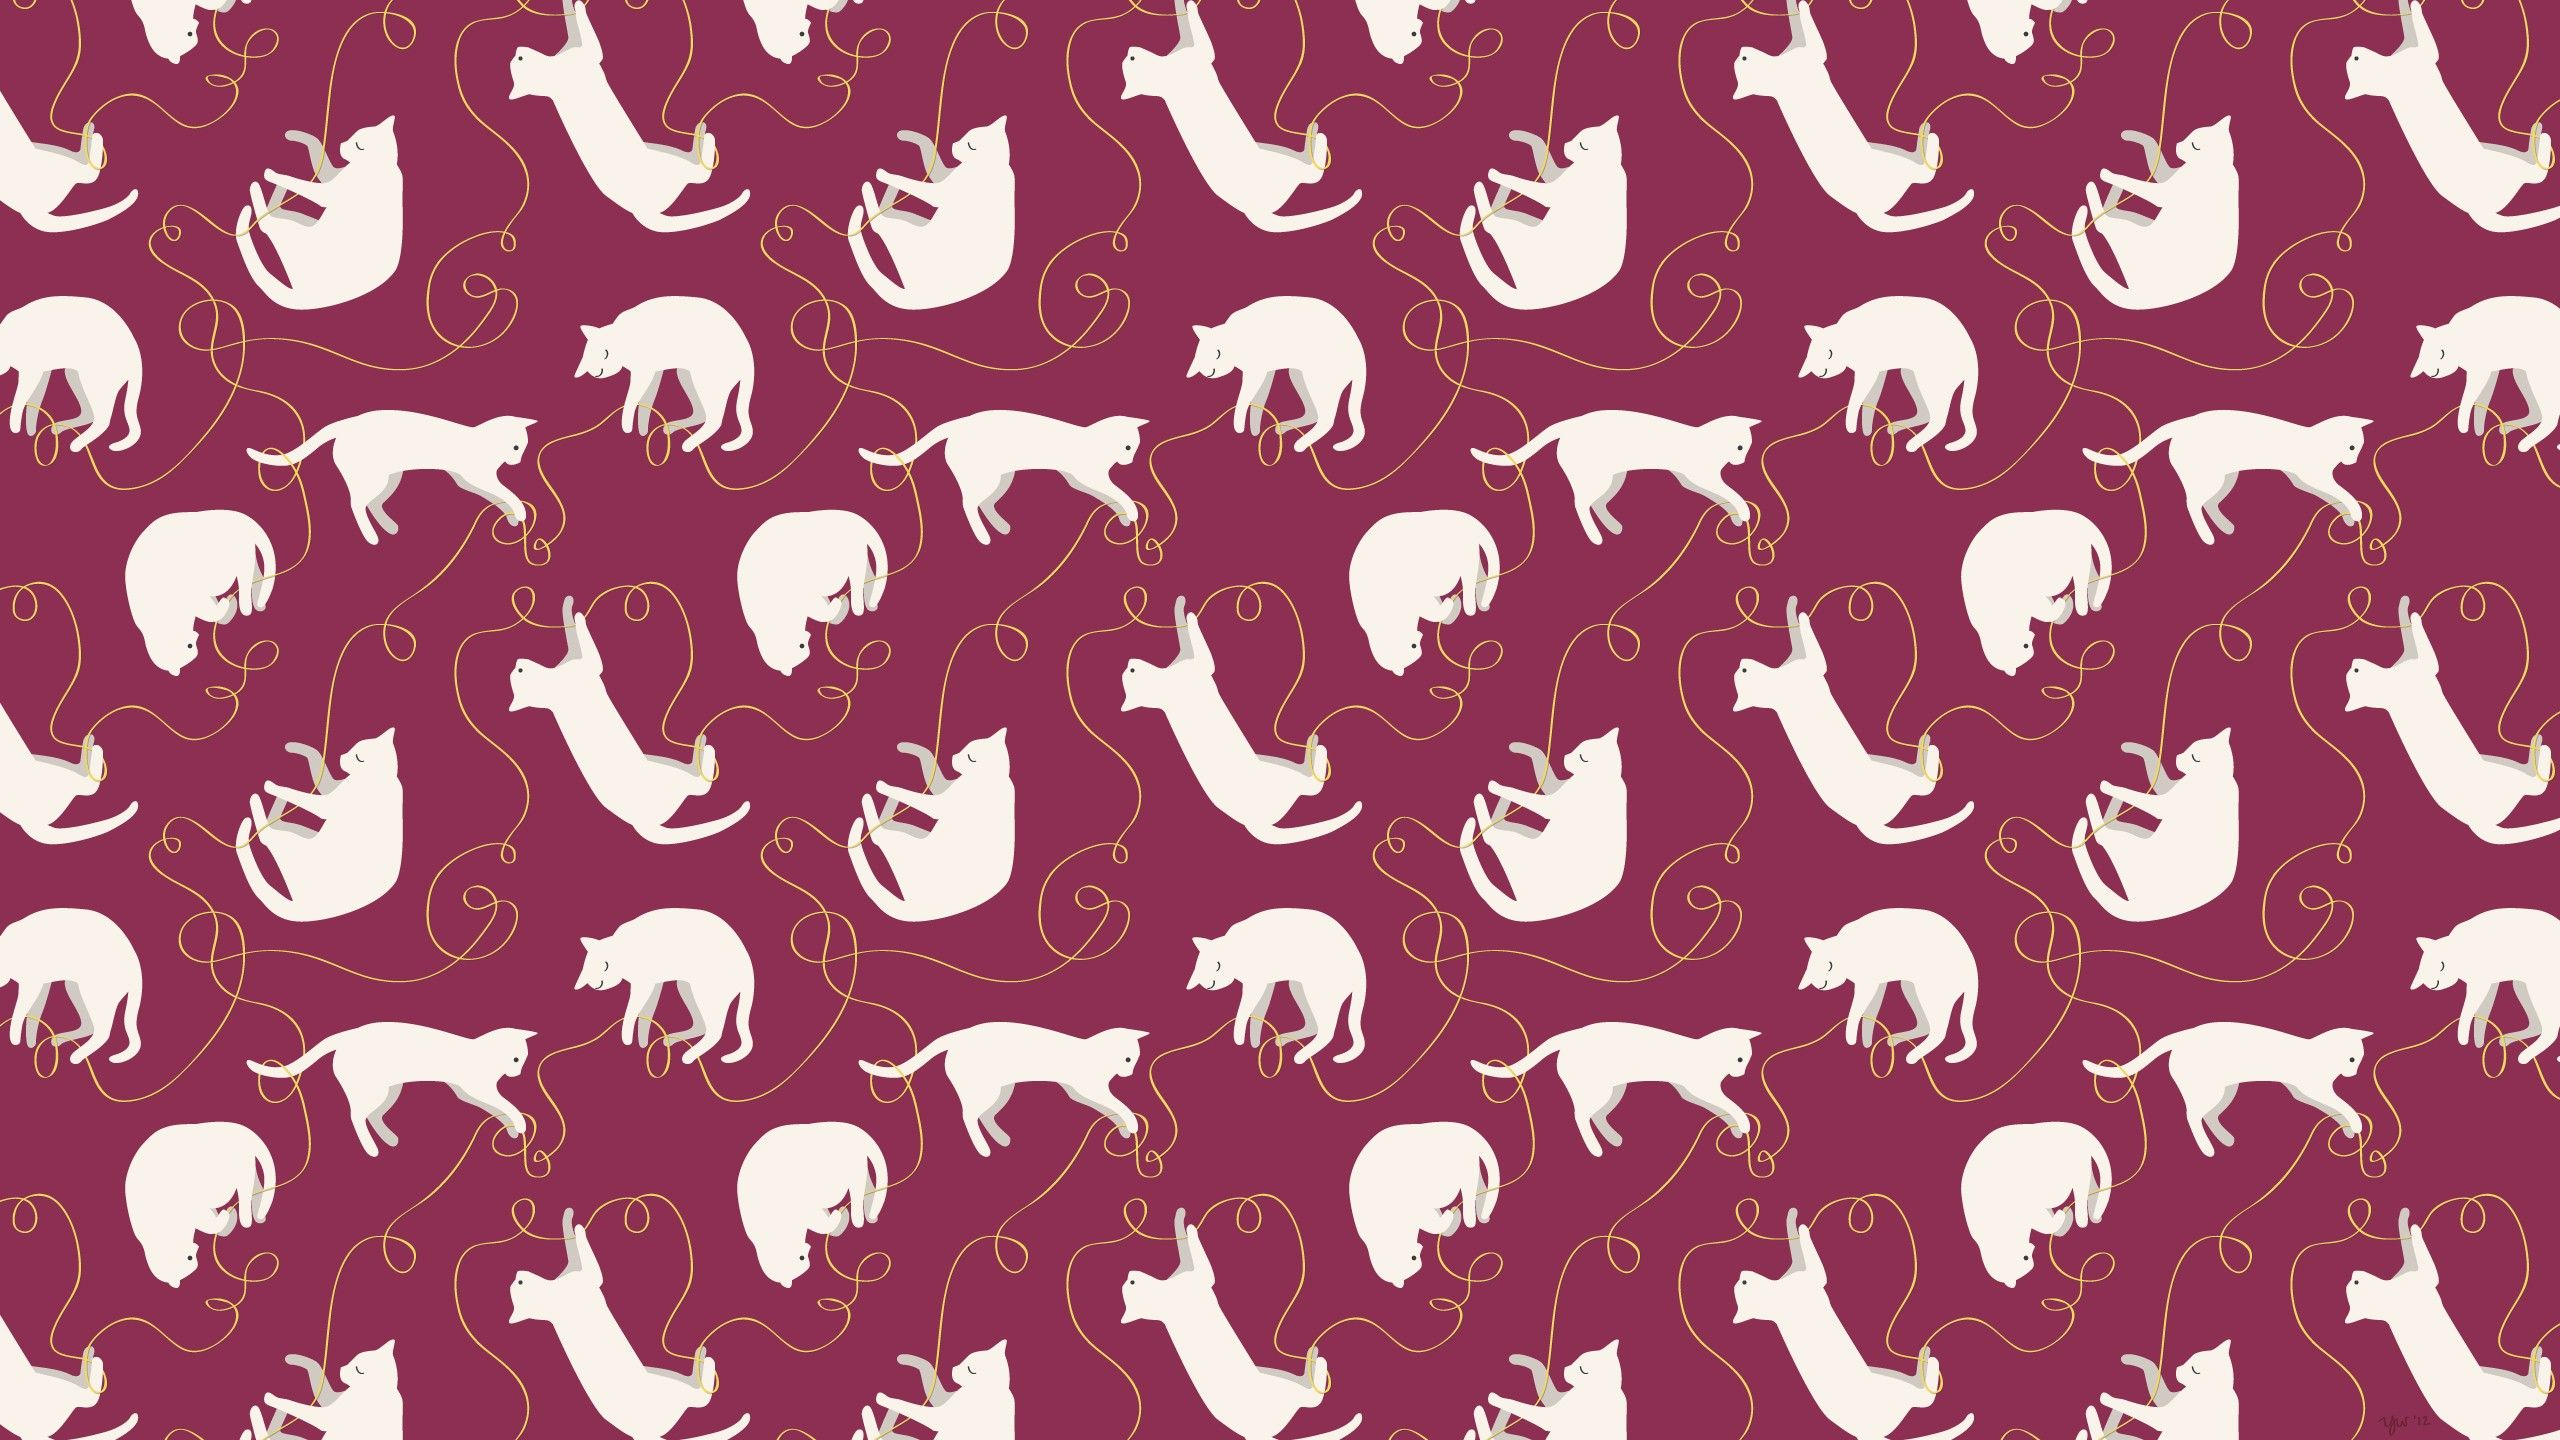 Pattern wallpaper tumblr epic car wallpapers pinterest wallpaper voltagebd Image collections